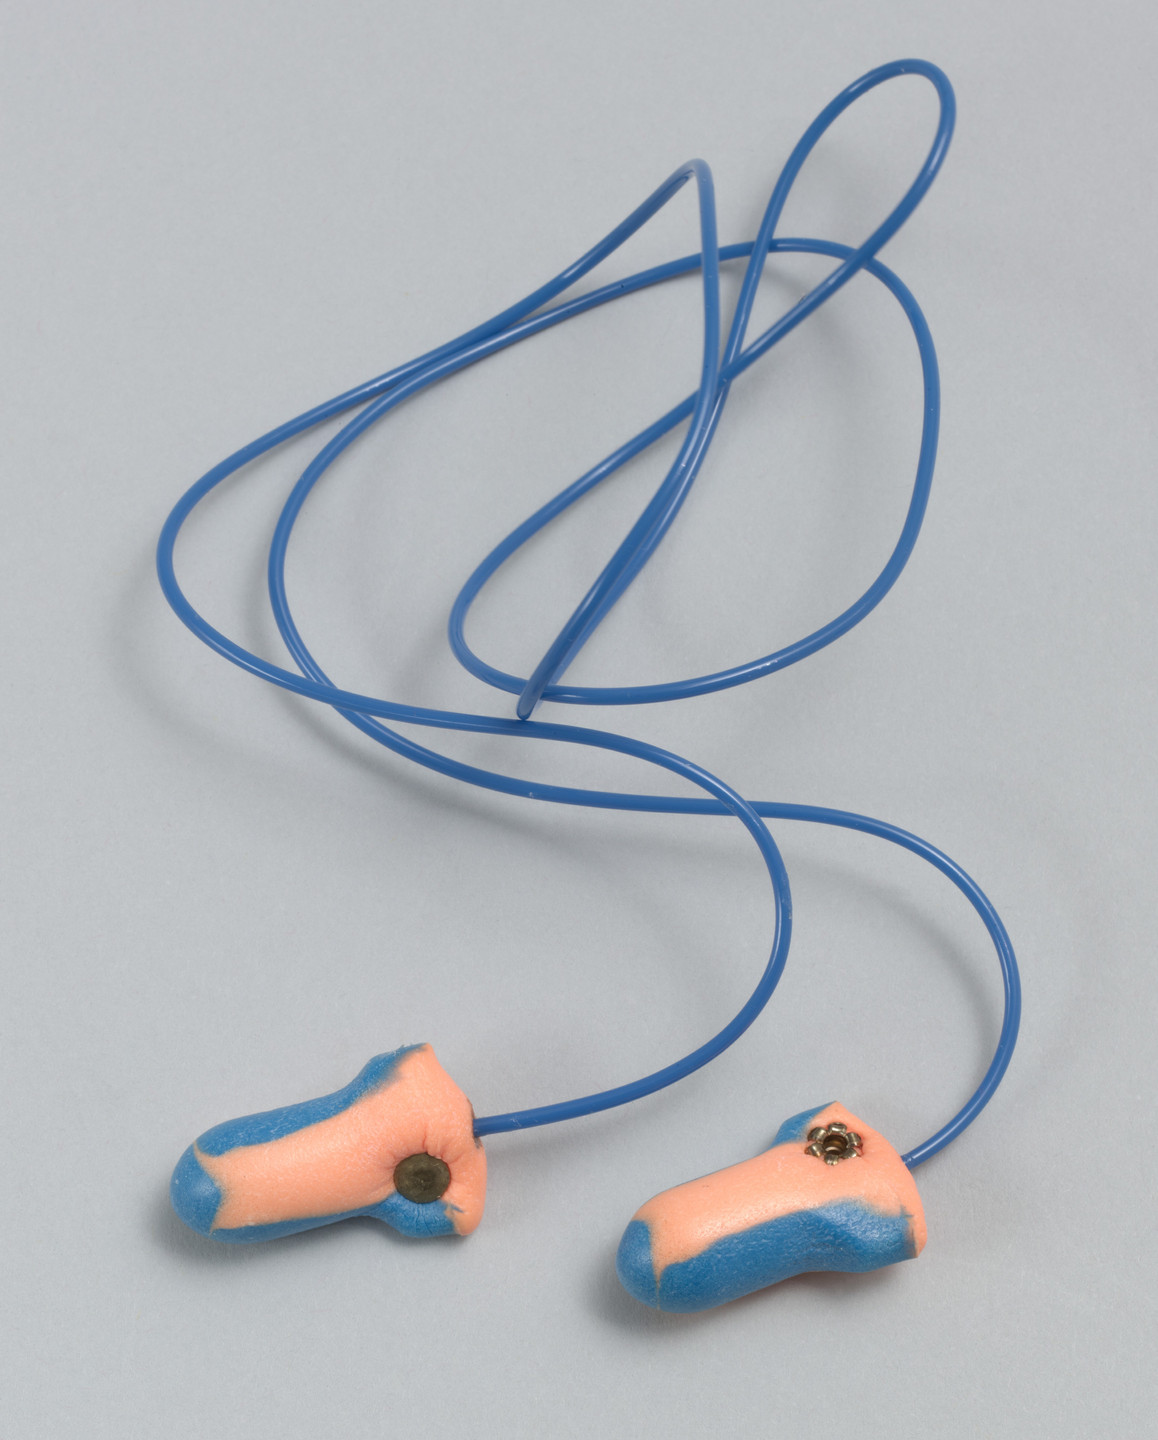 Thomas W. Fleming. Laser-Trak Single-Use Detectable Earplug. 1997